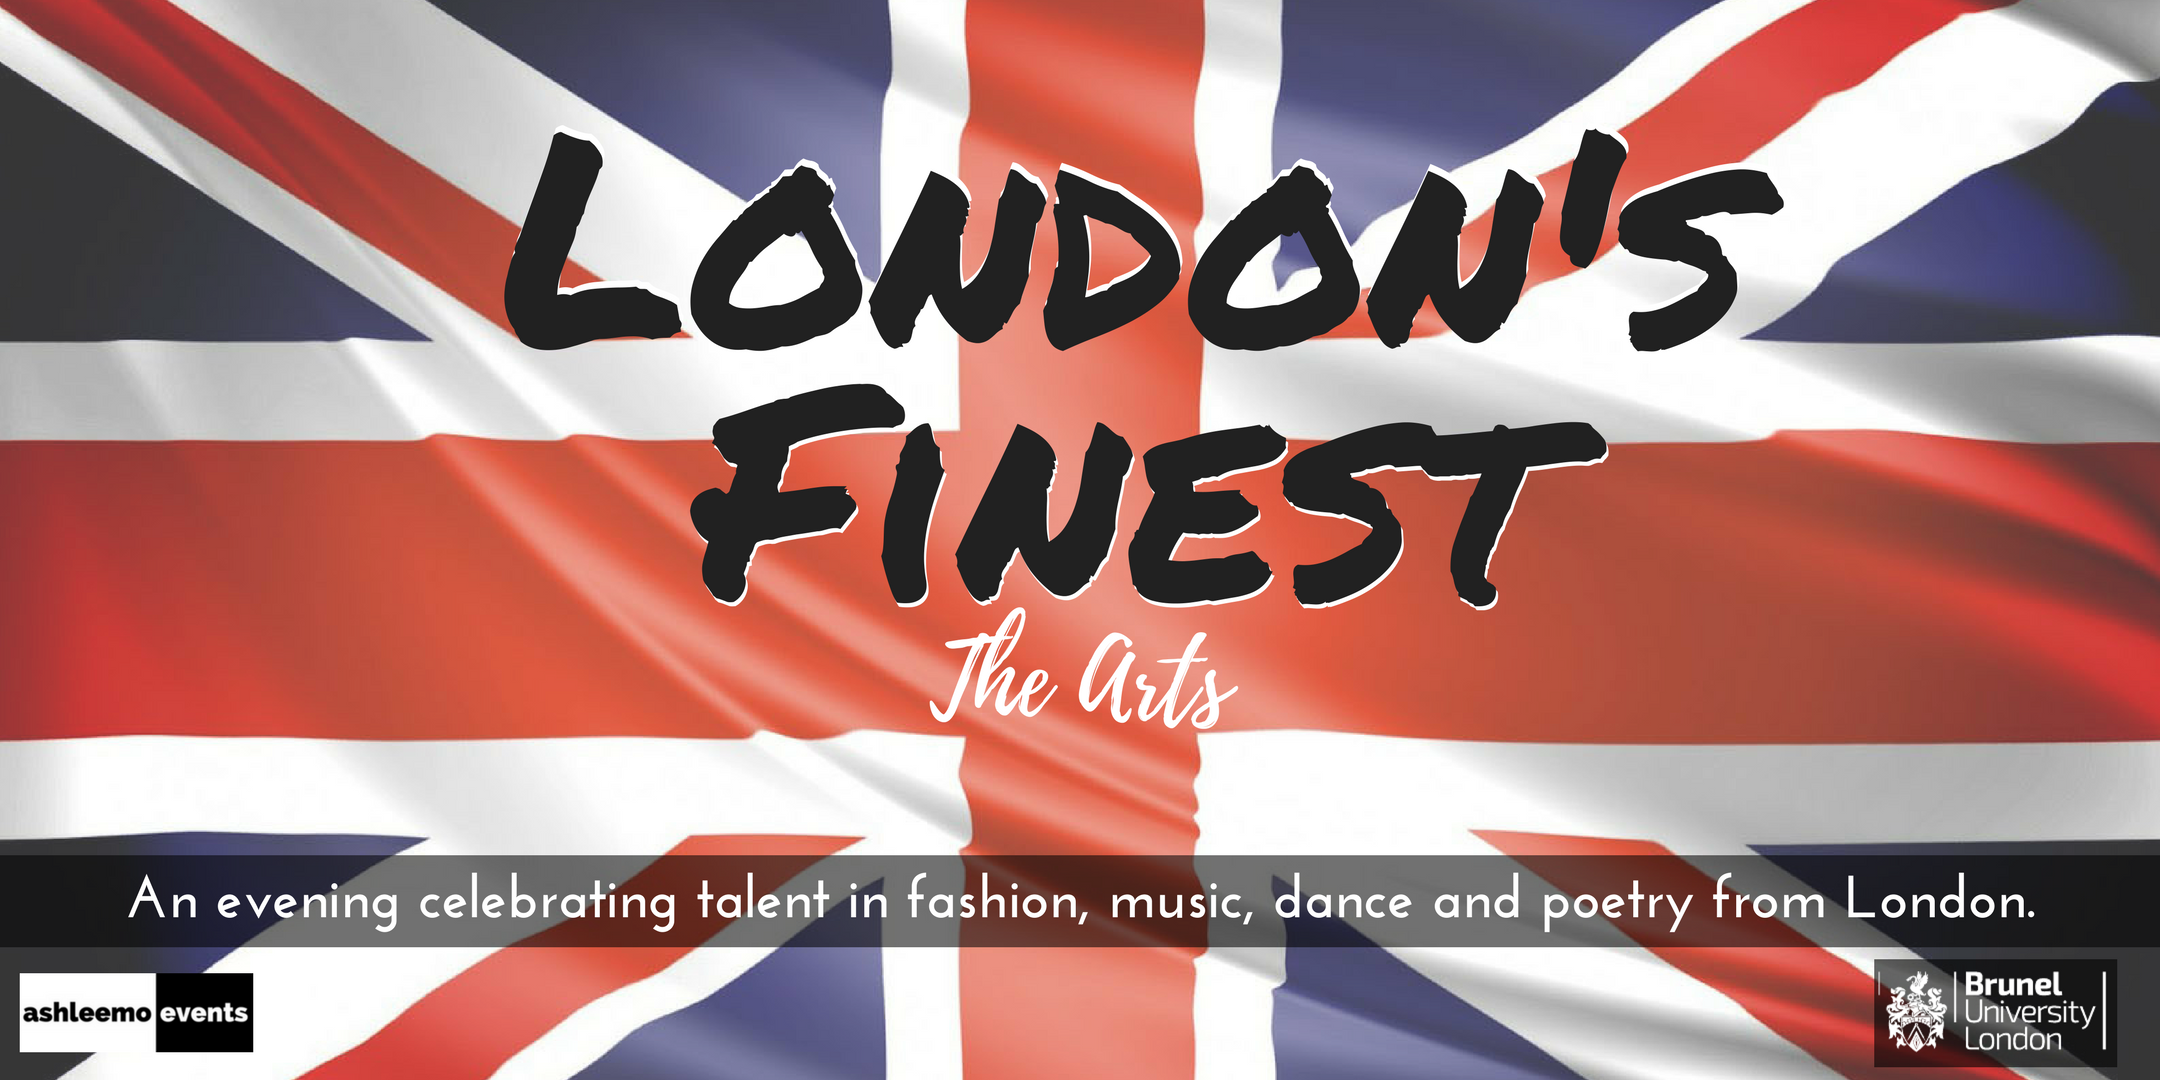 LONDON'S FINEST - EVENING OF FASHION & MUSIC